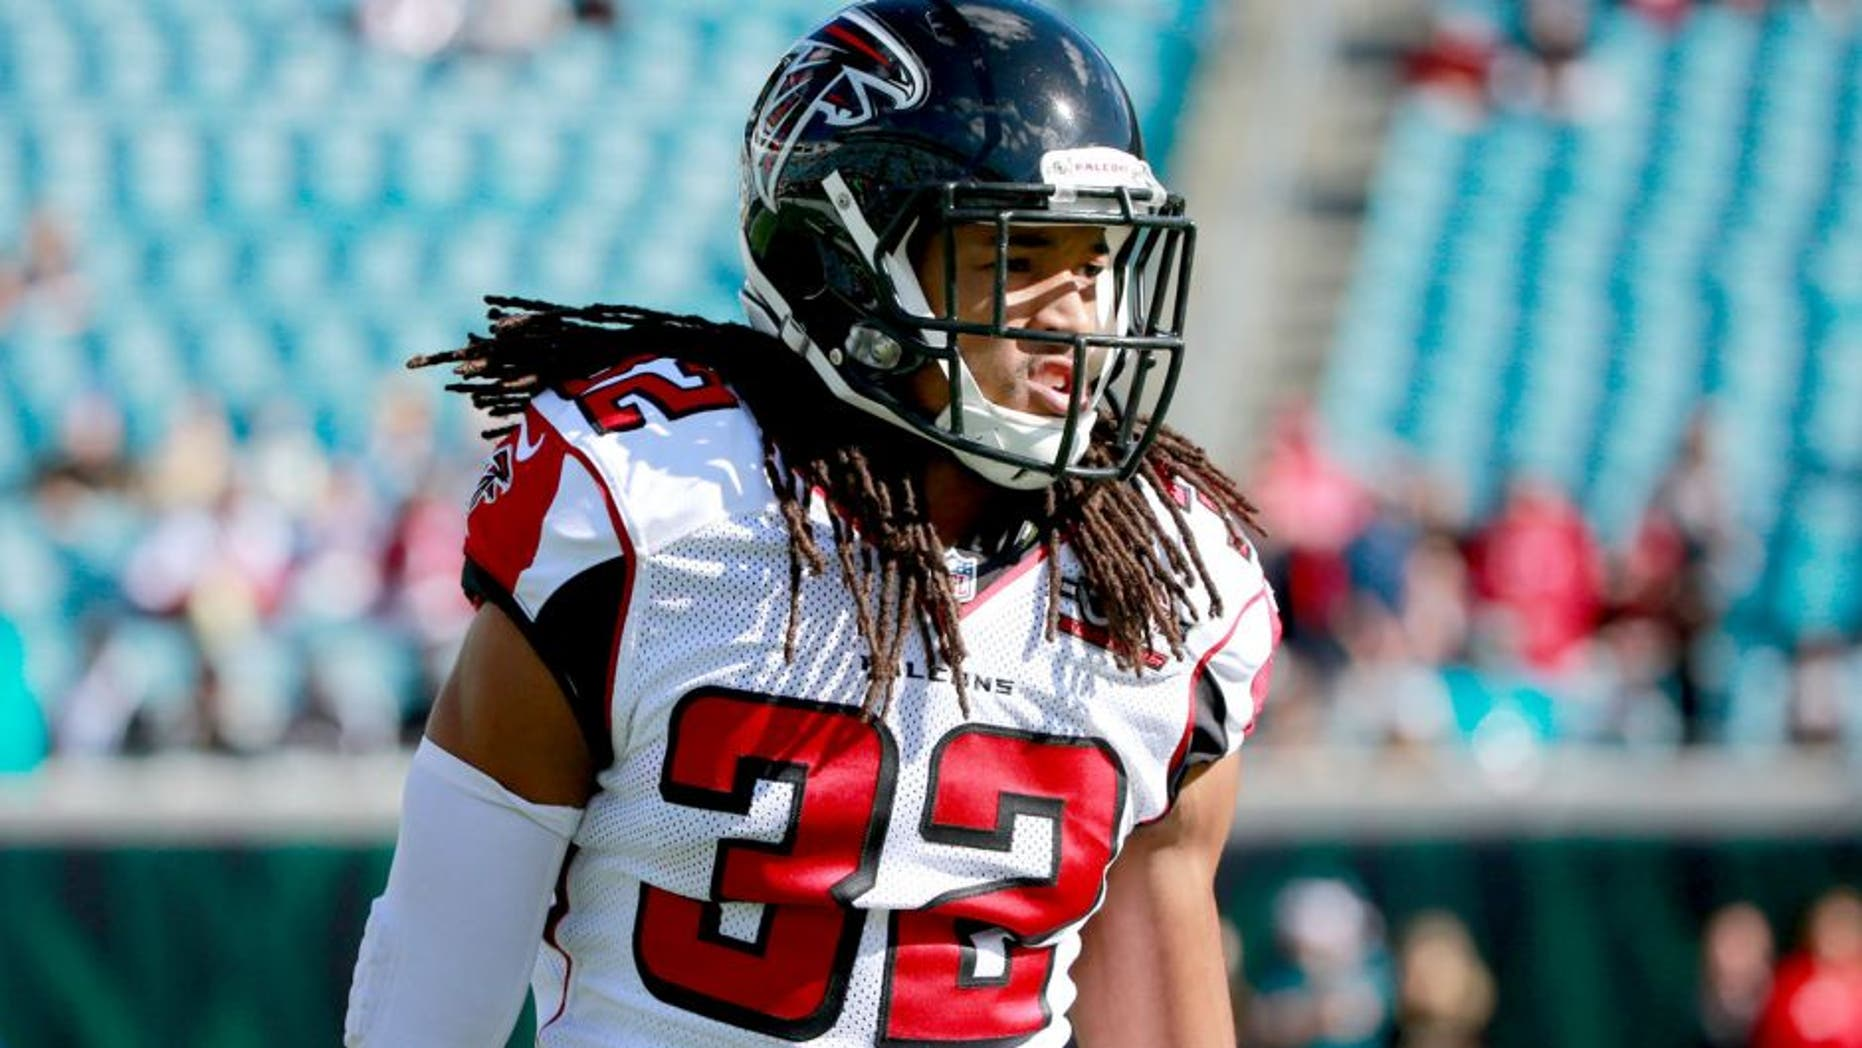 Dec 20, 2015; Jacksonville, FL, USA; Atlanta Falcons cornerback Jalen Collins (32) works out prior to the game at EverBank Field. Mandatory Credit: Kim Klement-USA TODAY Sports